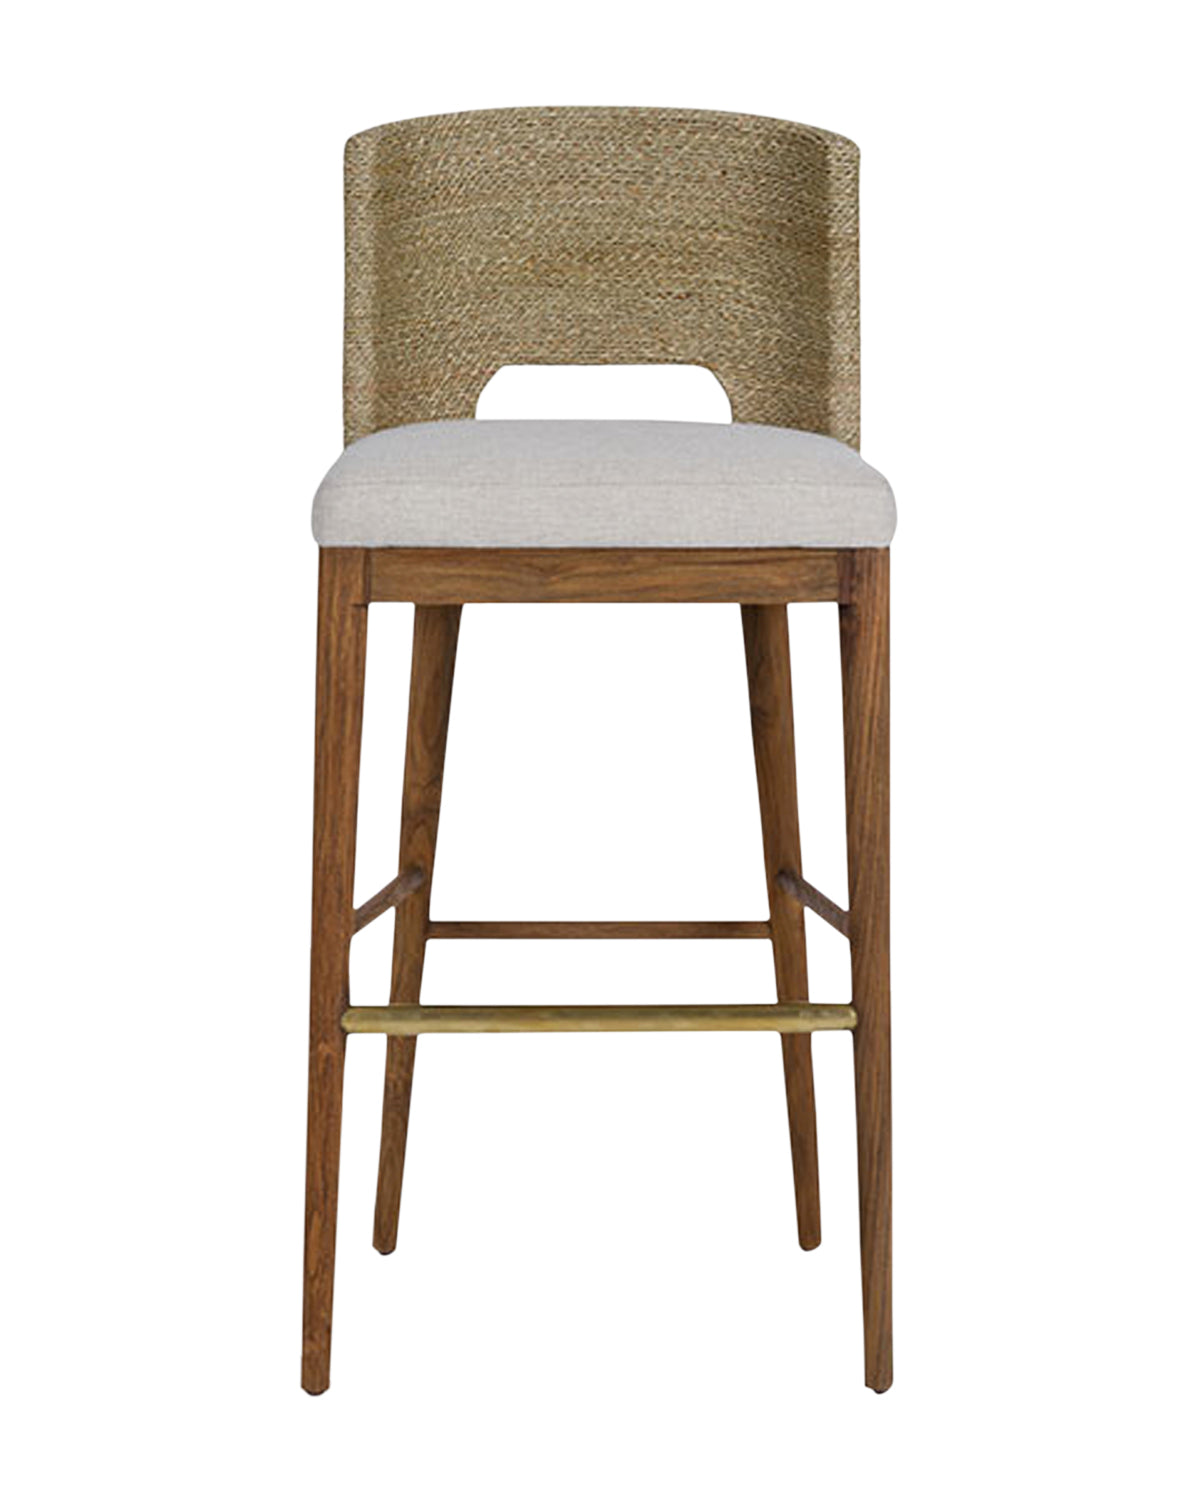 Swell Ava Seagrass Counter Stool Mcgee Co Creativecarmelina Interior Chair Design Creativecarmelinacom